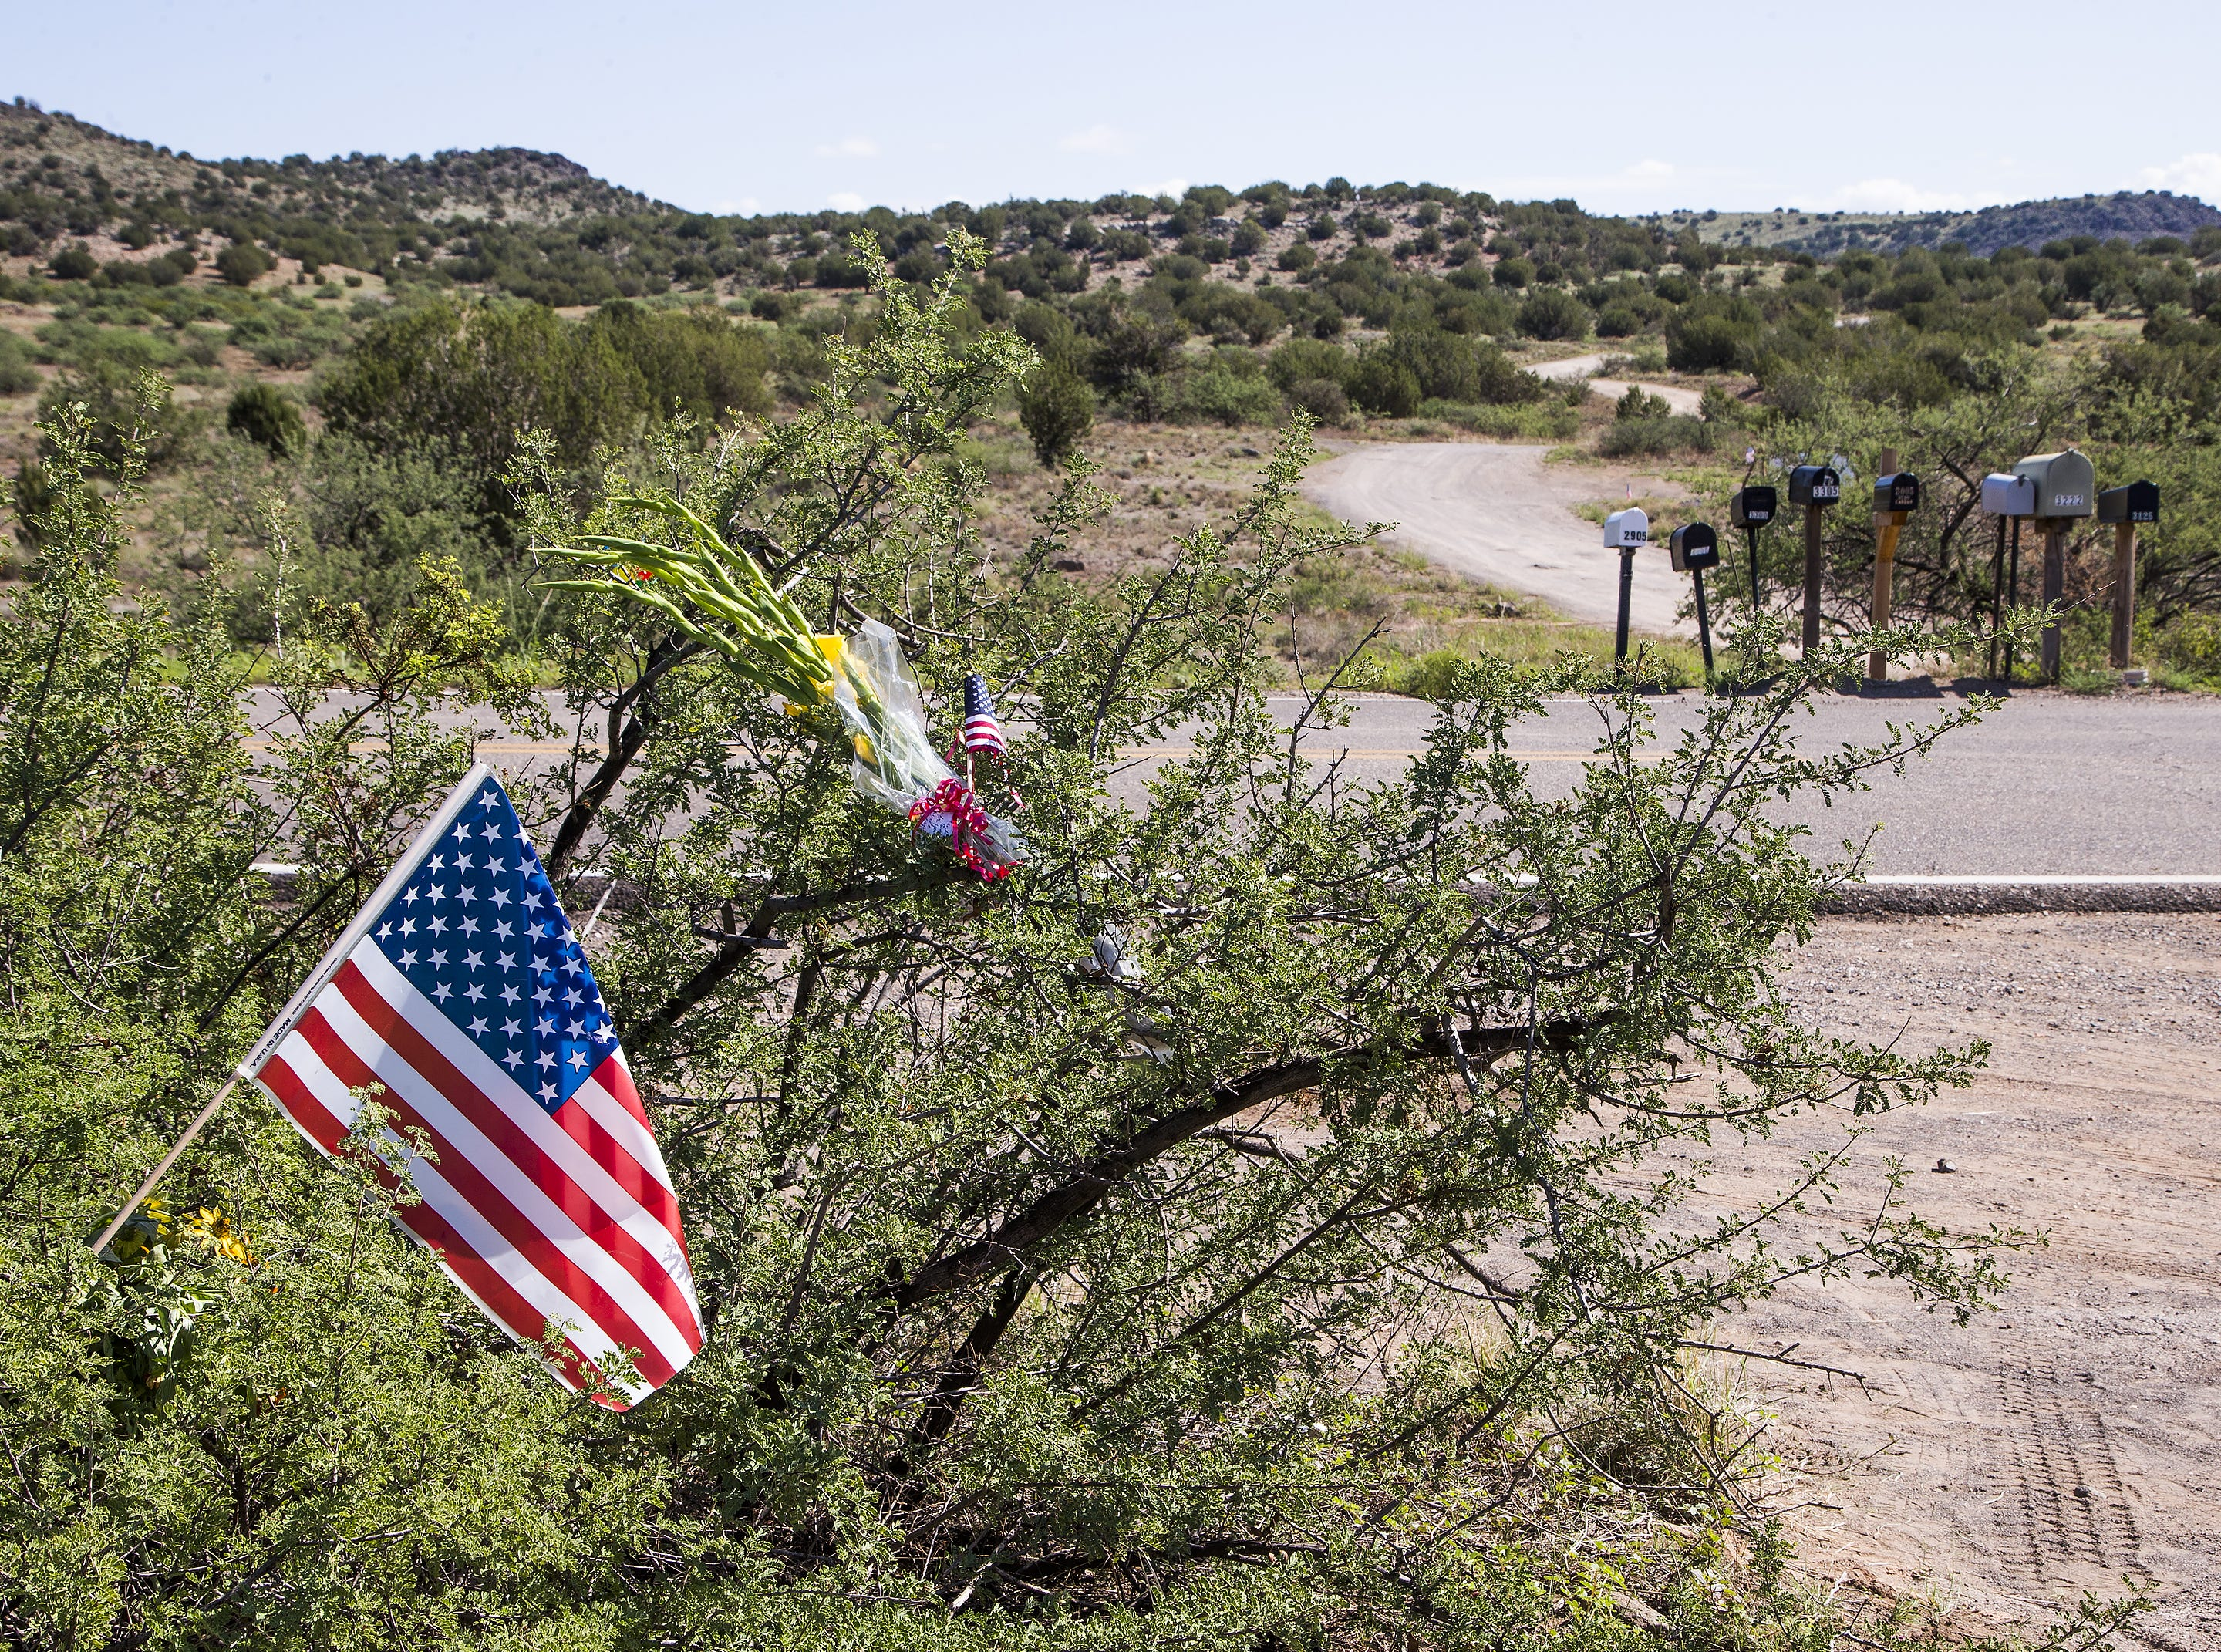 Two small flags and some flowers are stuck in a bush across the road leading to Sen. John McCain's home in Cornville, Arizona, Sunday morning, Aug. 26, 2018.  McCain died Saturday at his home and is being mourned by millions around the world.